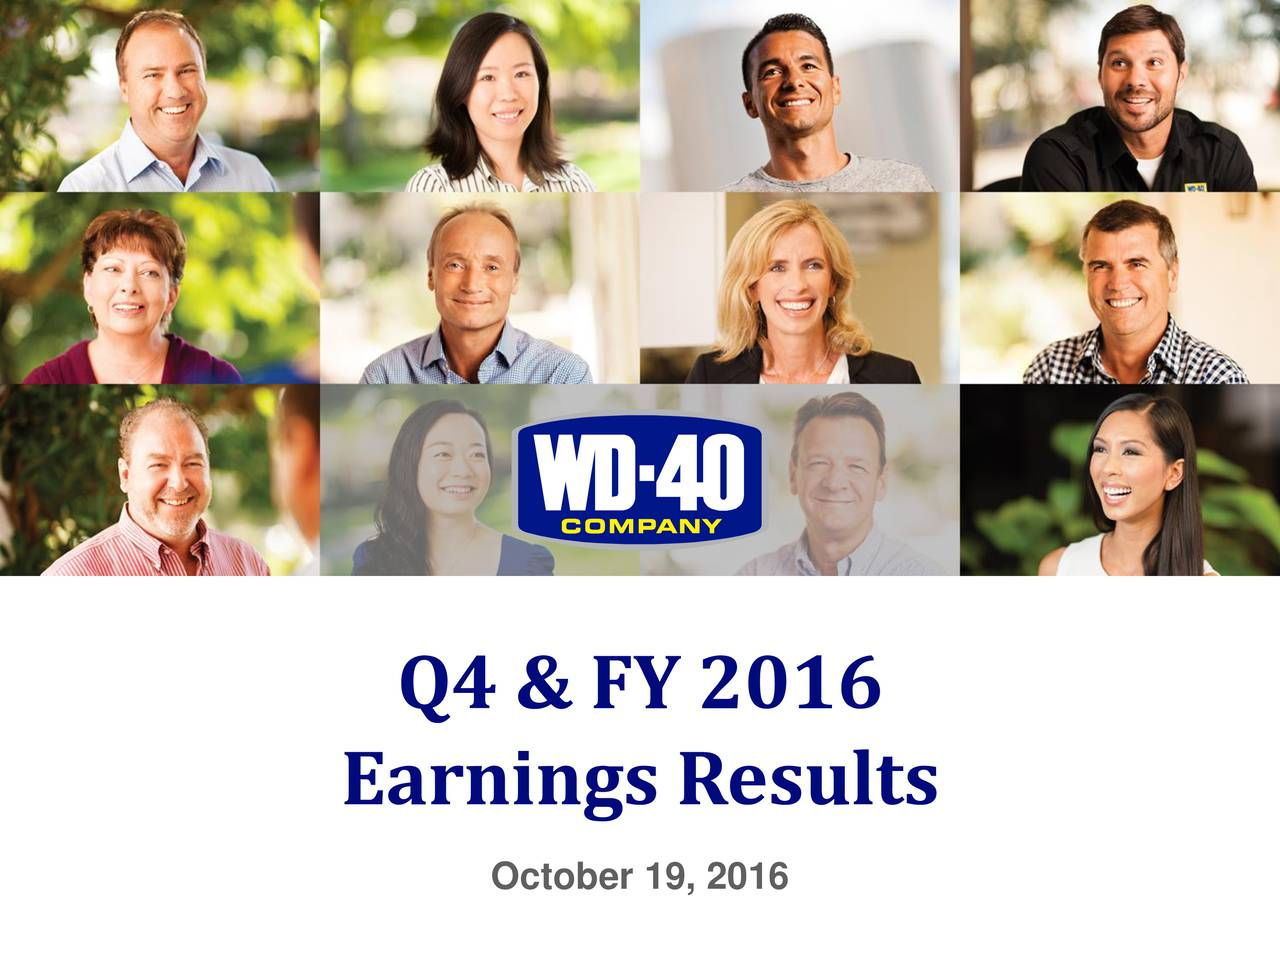 Earnings Results October 19, 2016